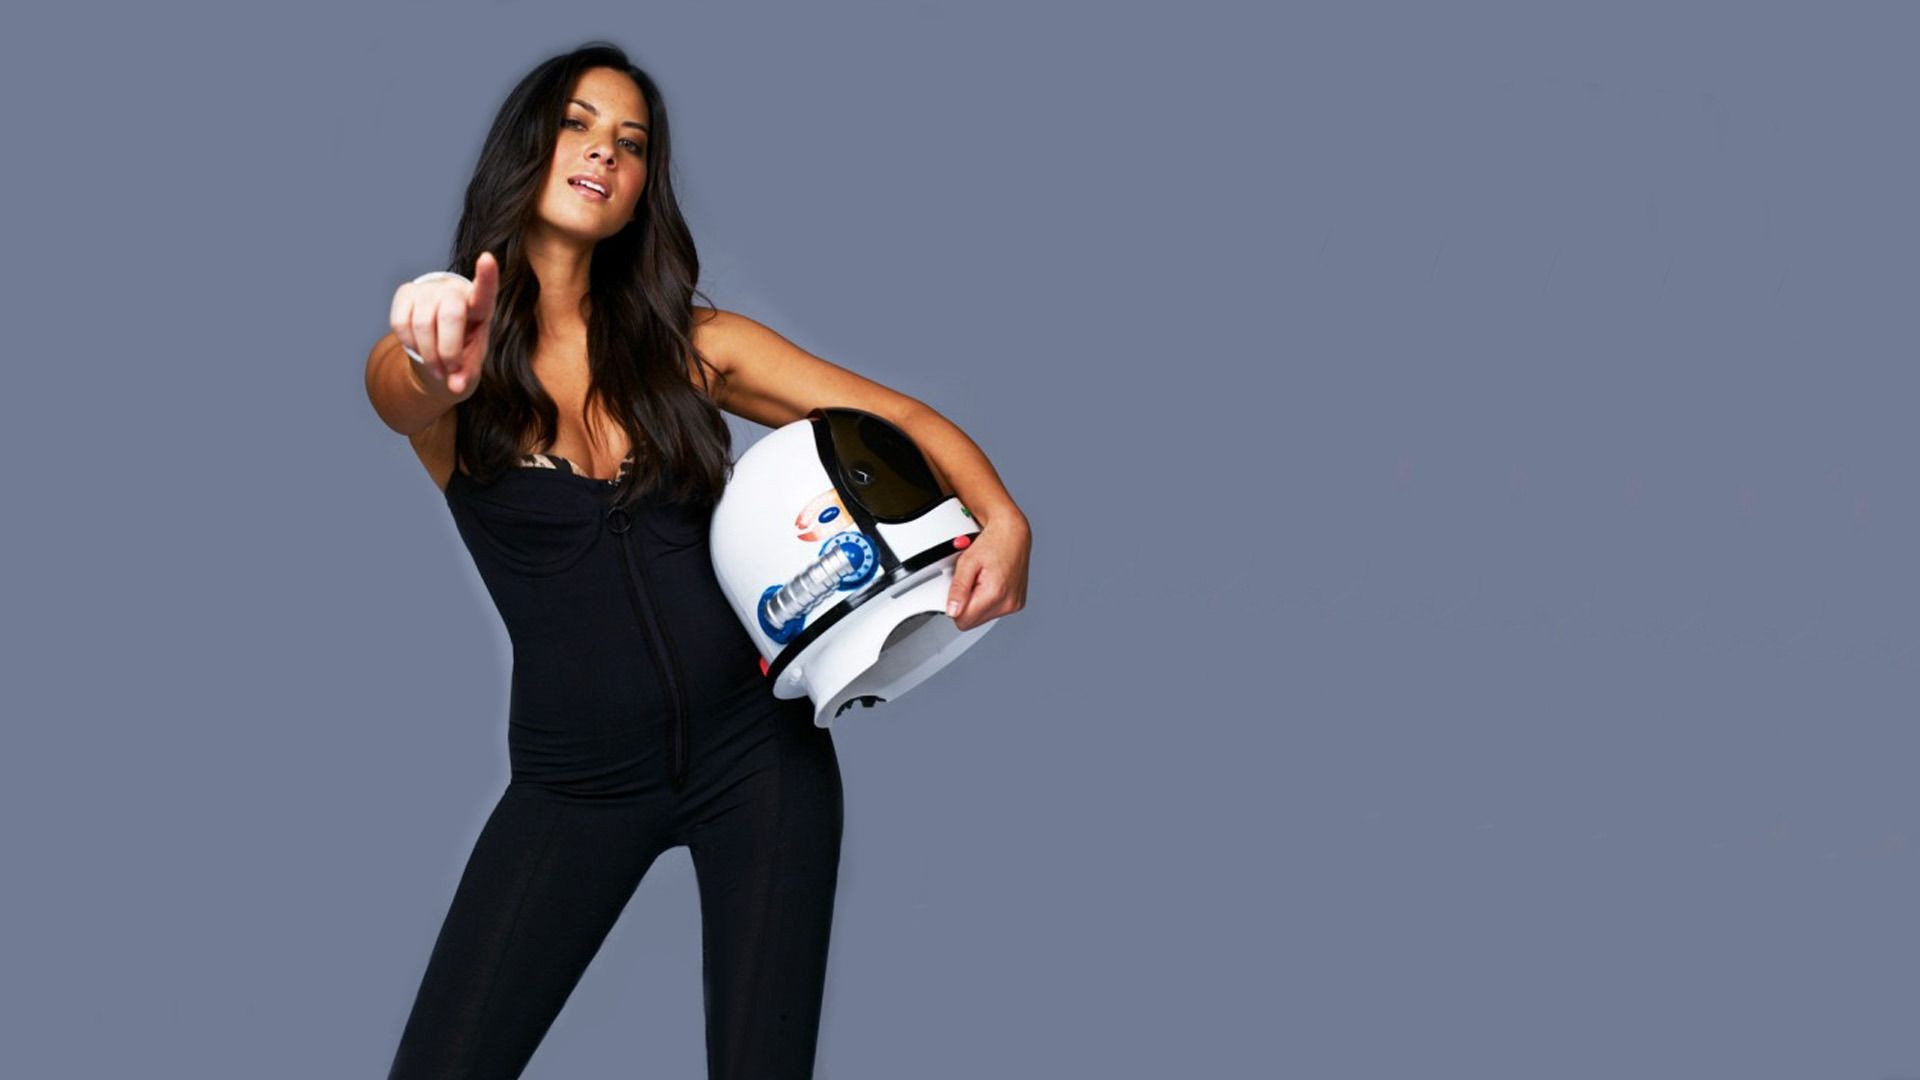 olivia munn30 1920x1080 wallpapers - photo #4